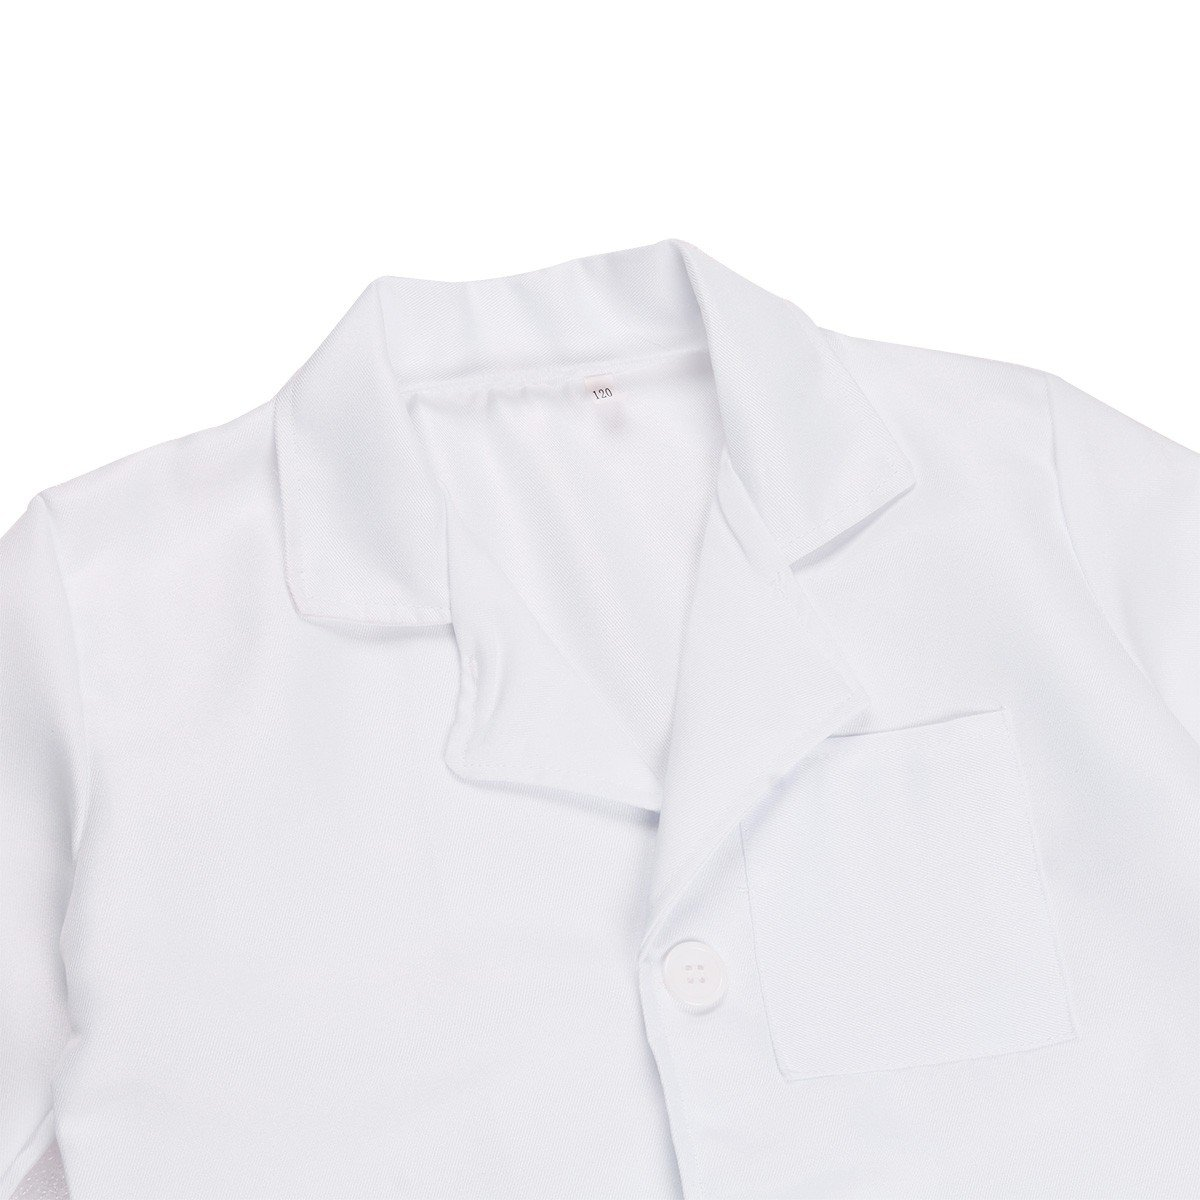 FEESHOW Kids Boy Girl Long Sleeve White Lab Coat Doctor Uniform Outfit Cosplay Costume White 7-8 by EESHOW (Image #3)